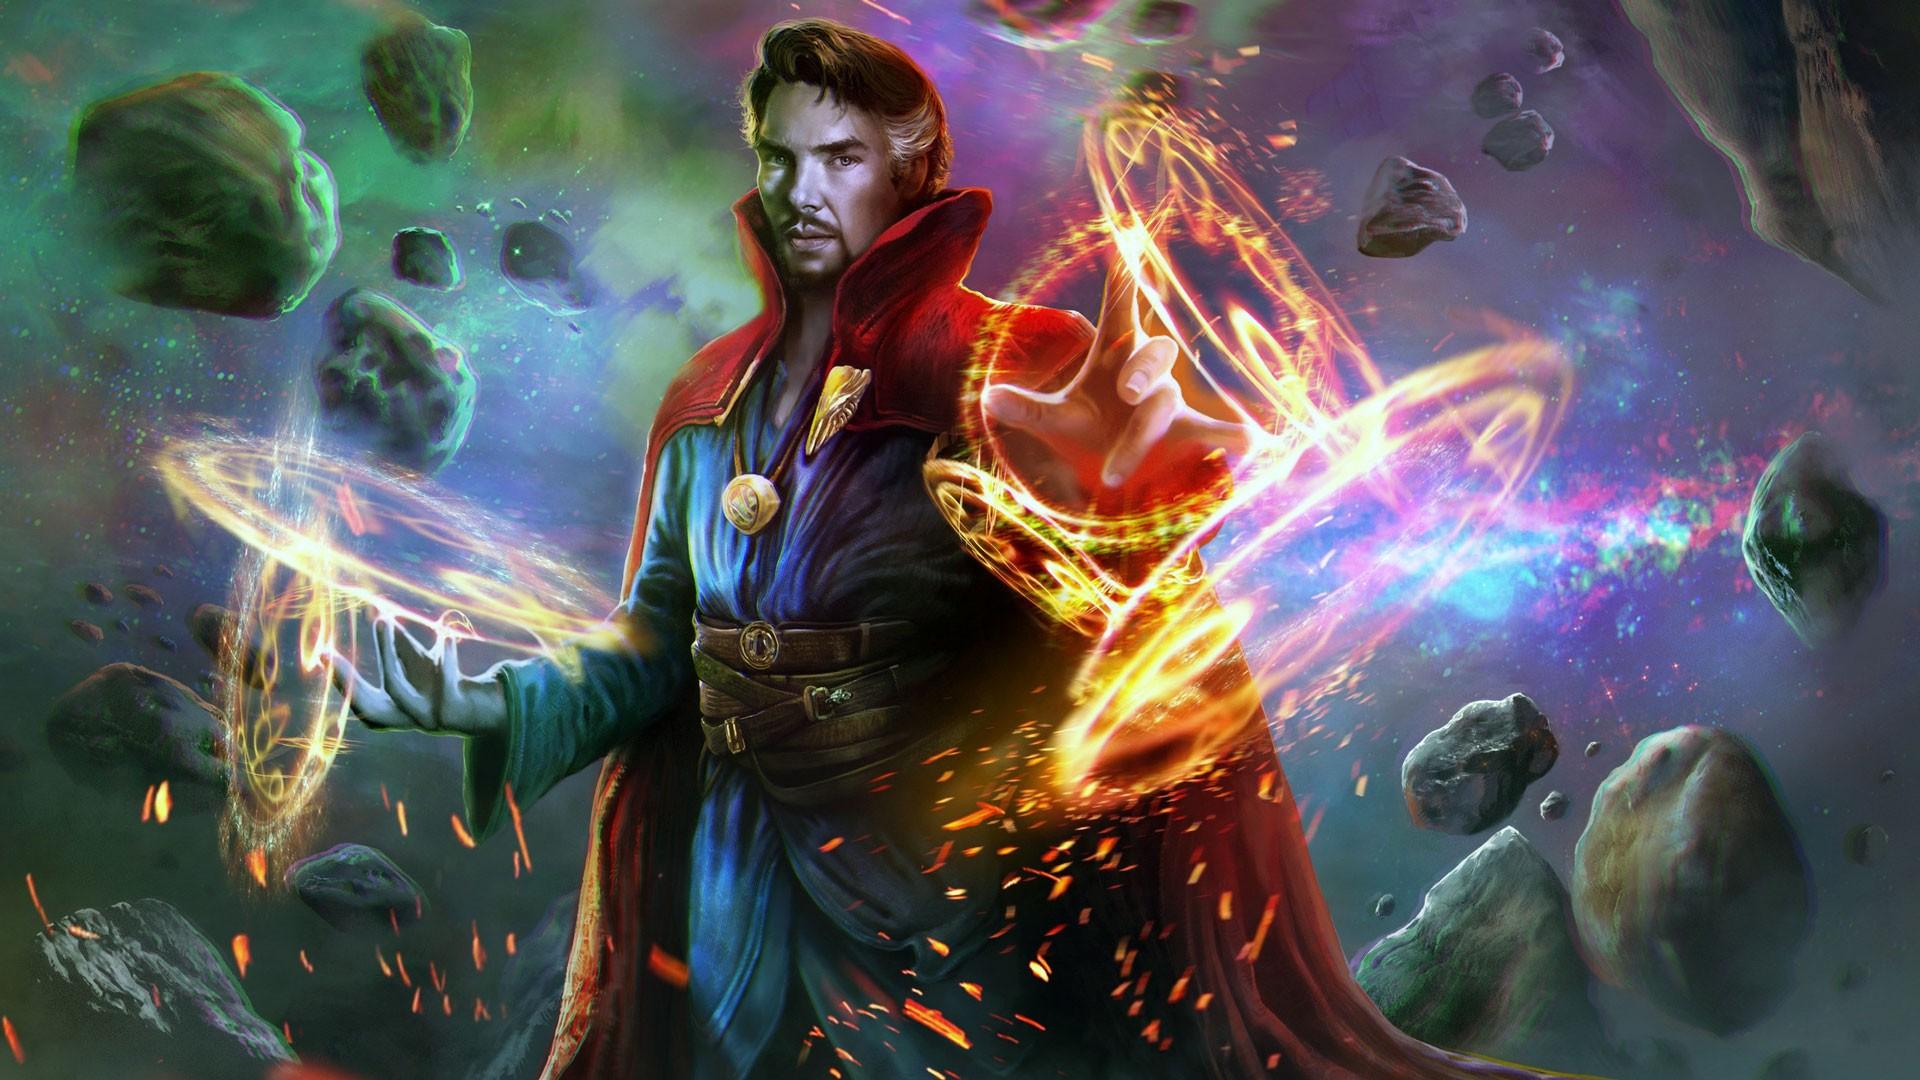 doctor strange wallpaper ·① download free awesome wallpapers for